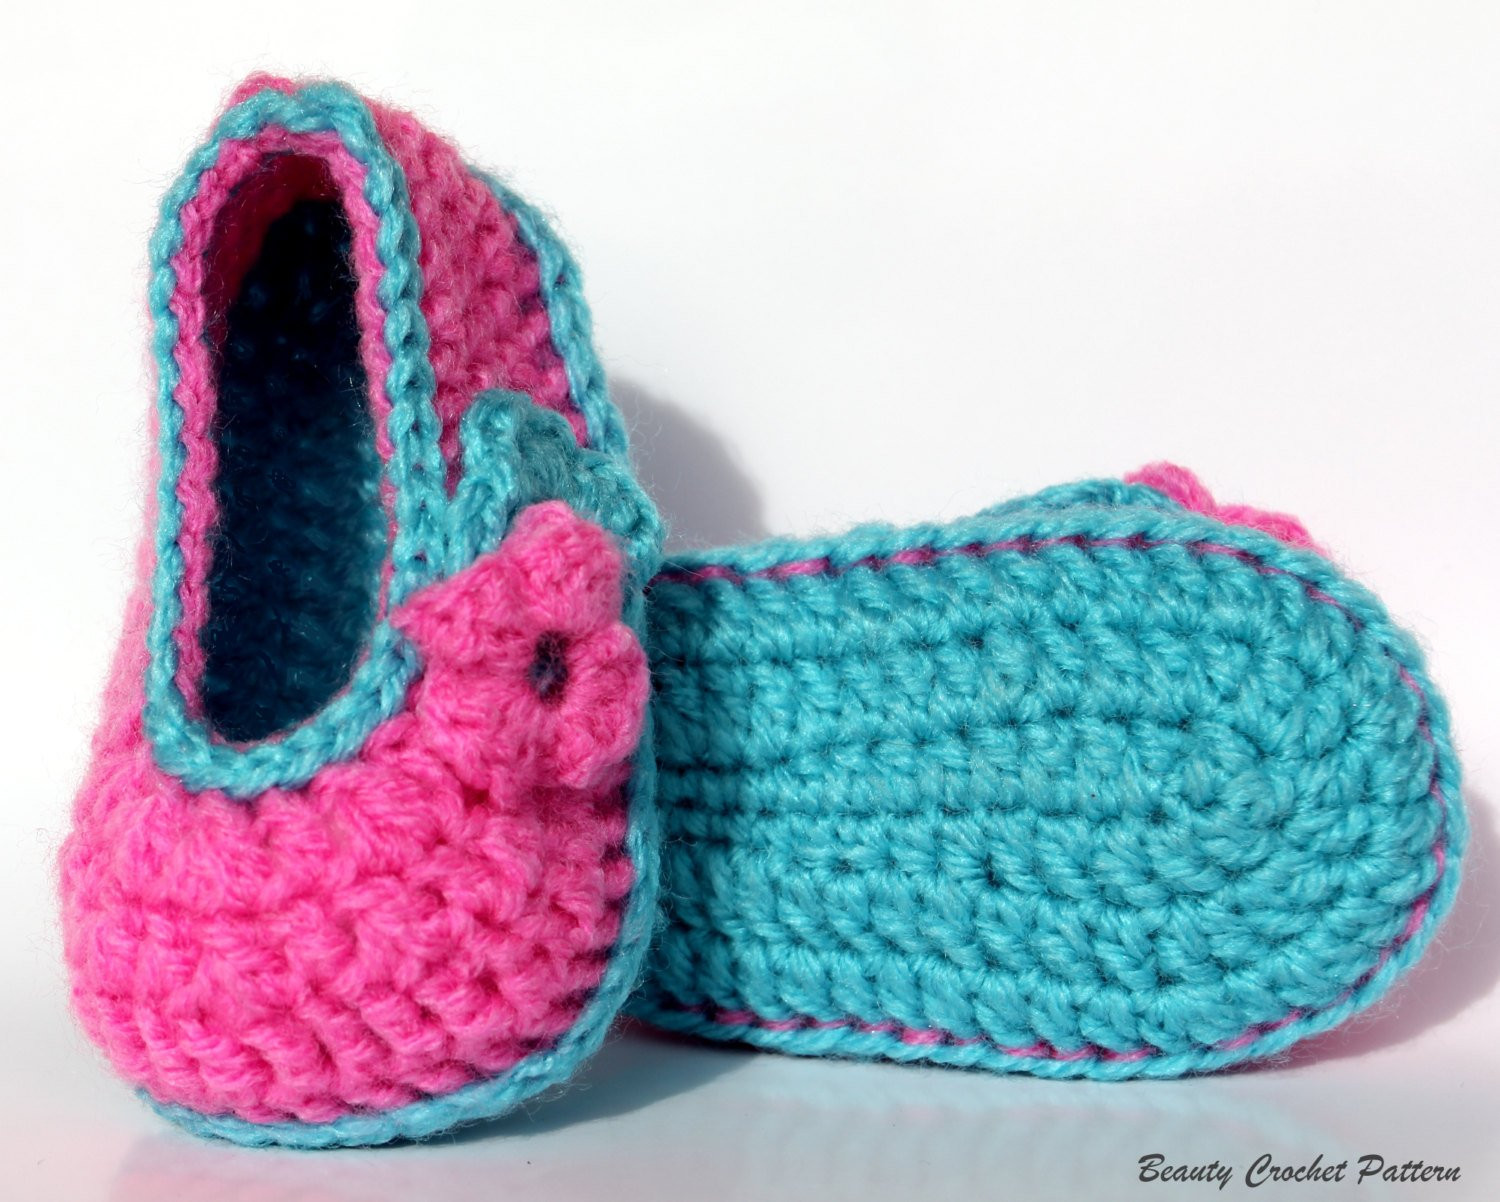 Crochet Baby Shoes Unique Crochet Baby Pattern Barbie Style Shoes Baby Girl Crochet Of Delightful 42 Models Crochet Baby Shoes